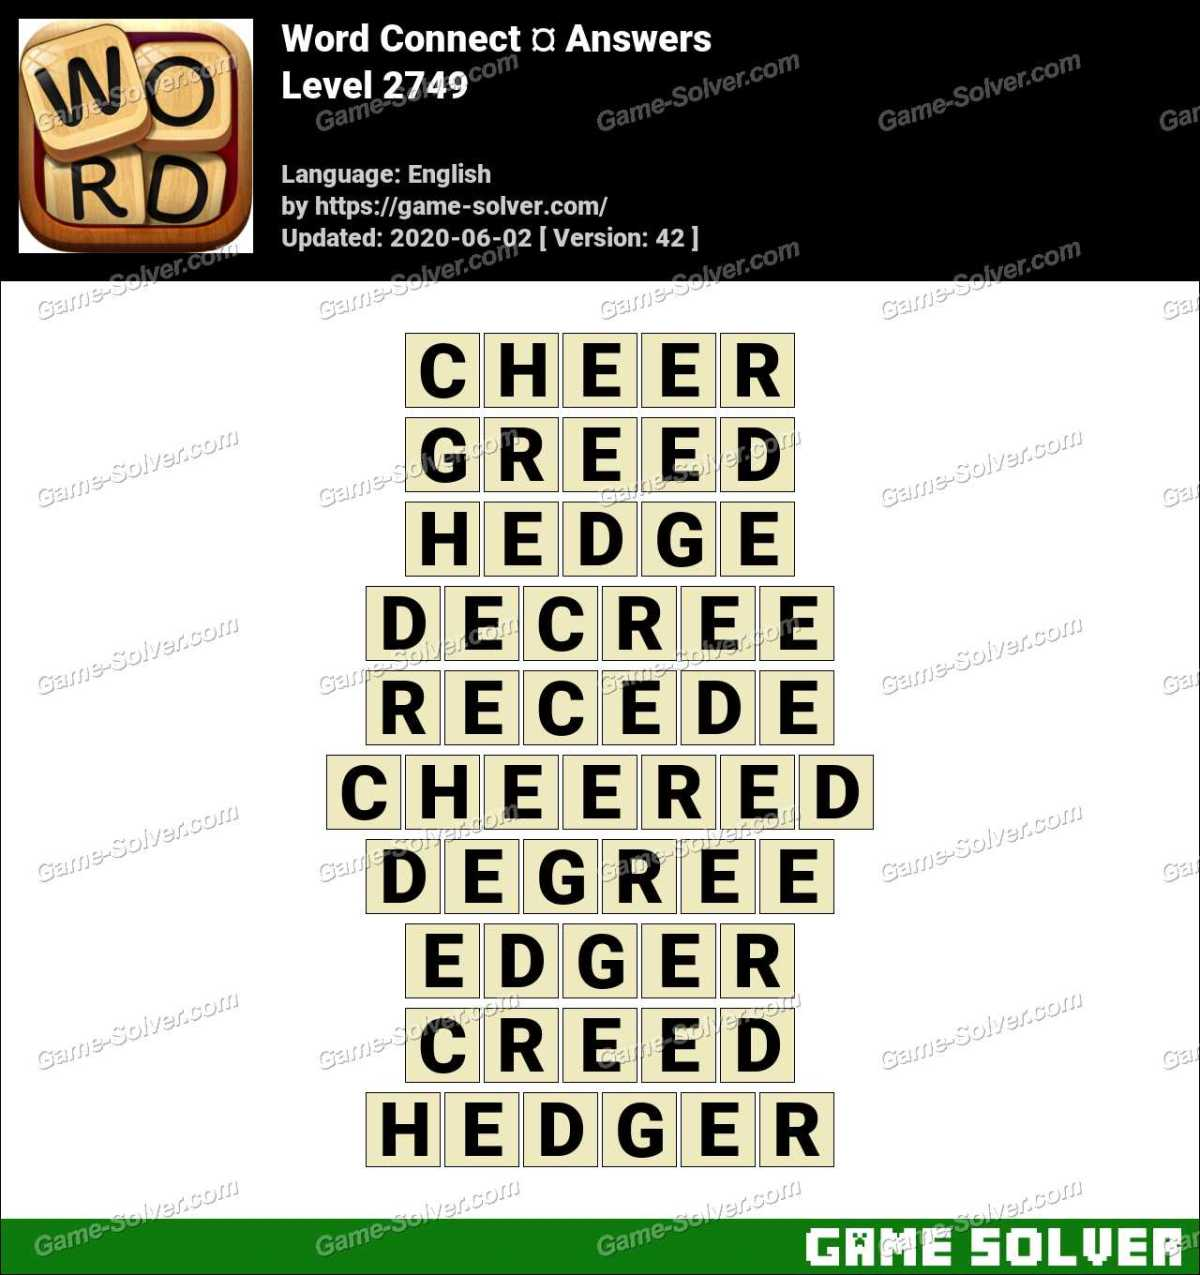 Word Connect Level 2749 Answers